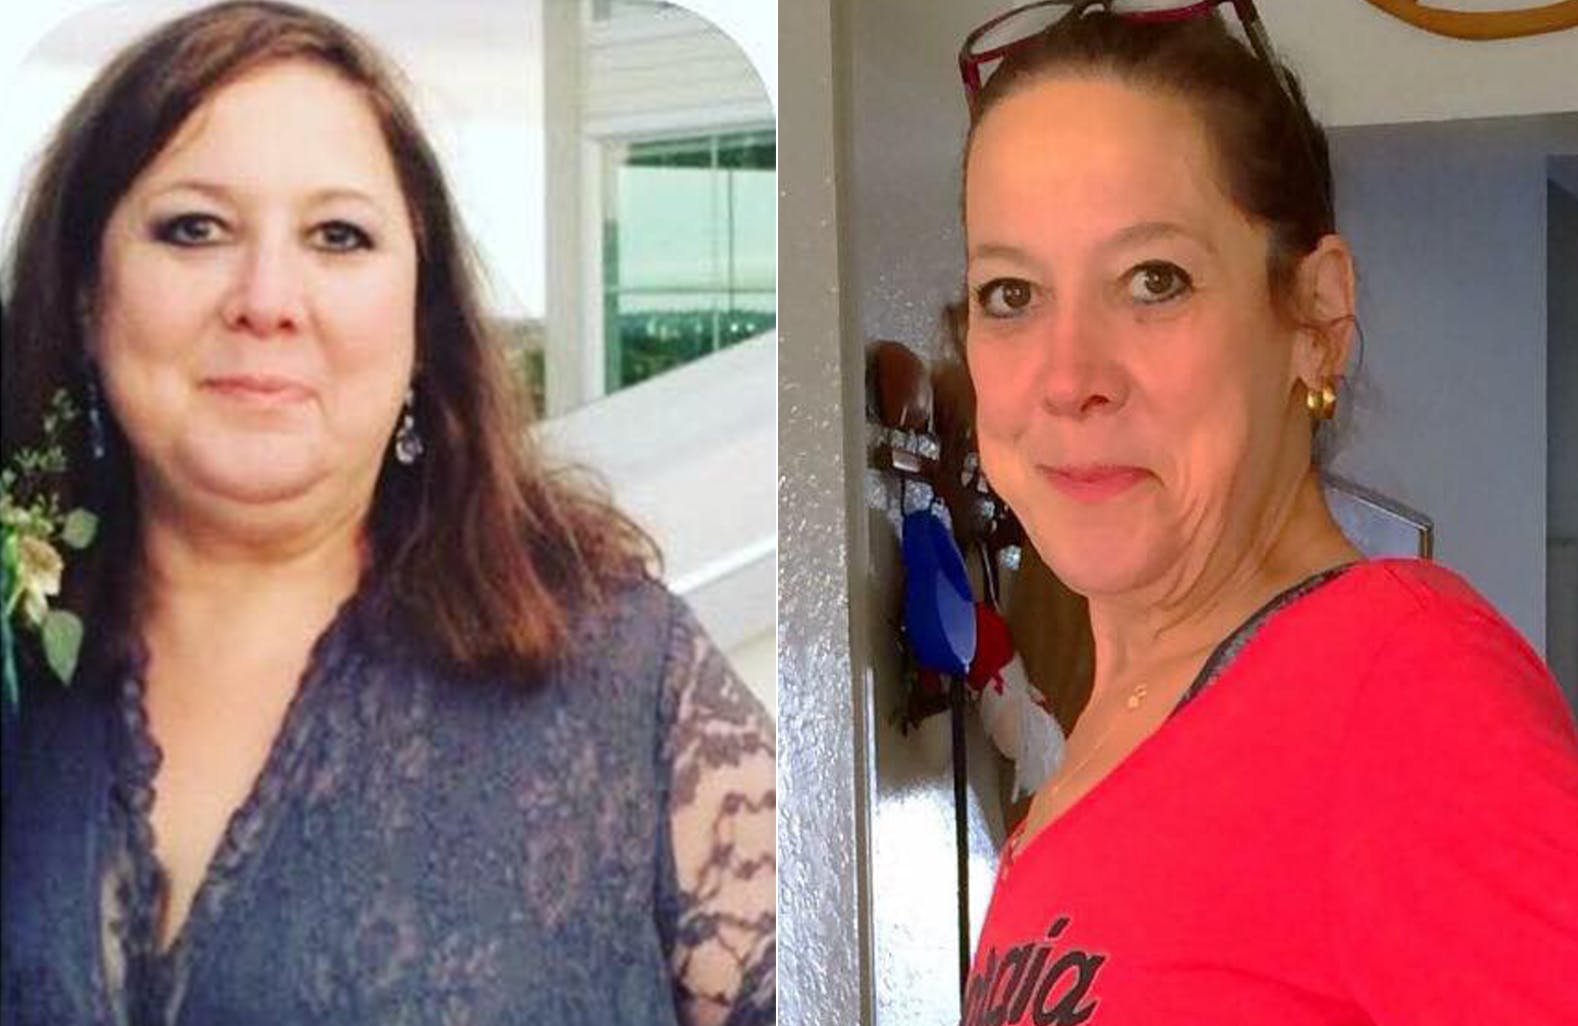 Long Term Weight Loss On Keto Maintaining A No Excuses Attitude